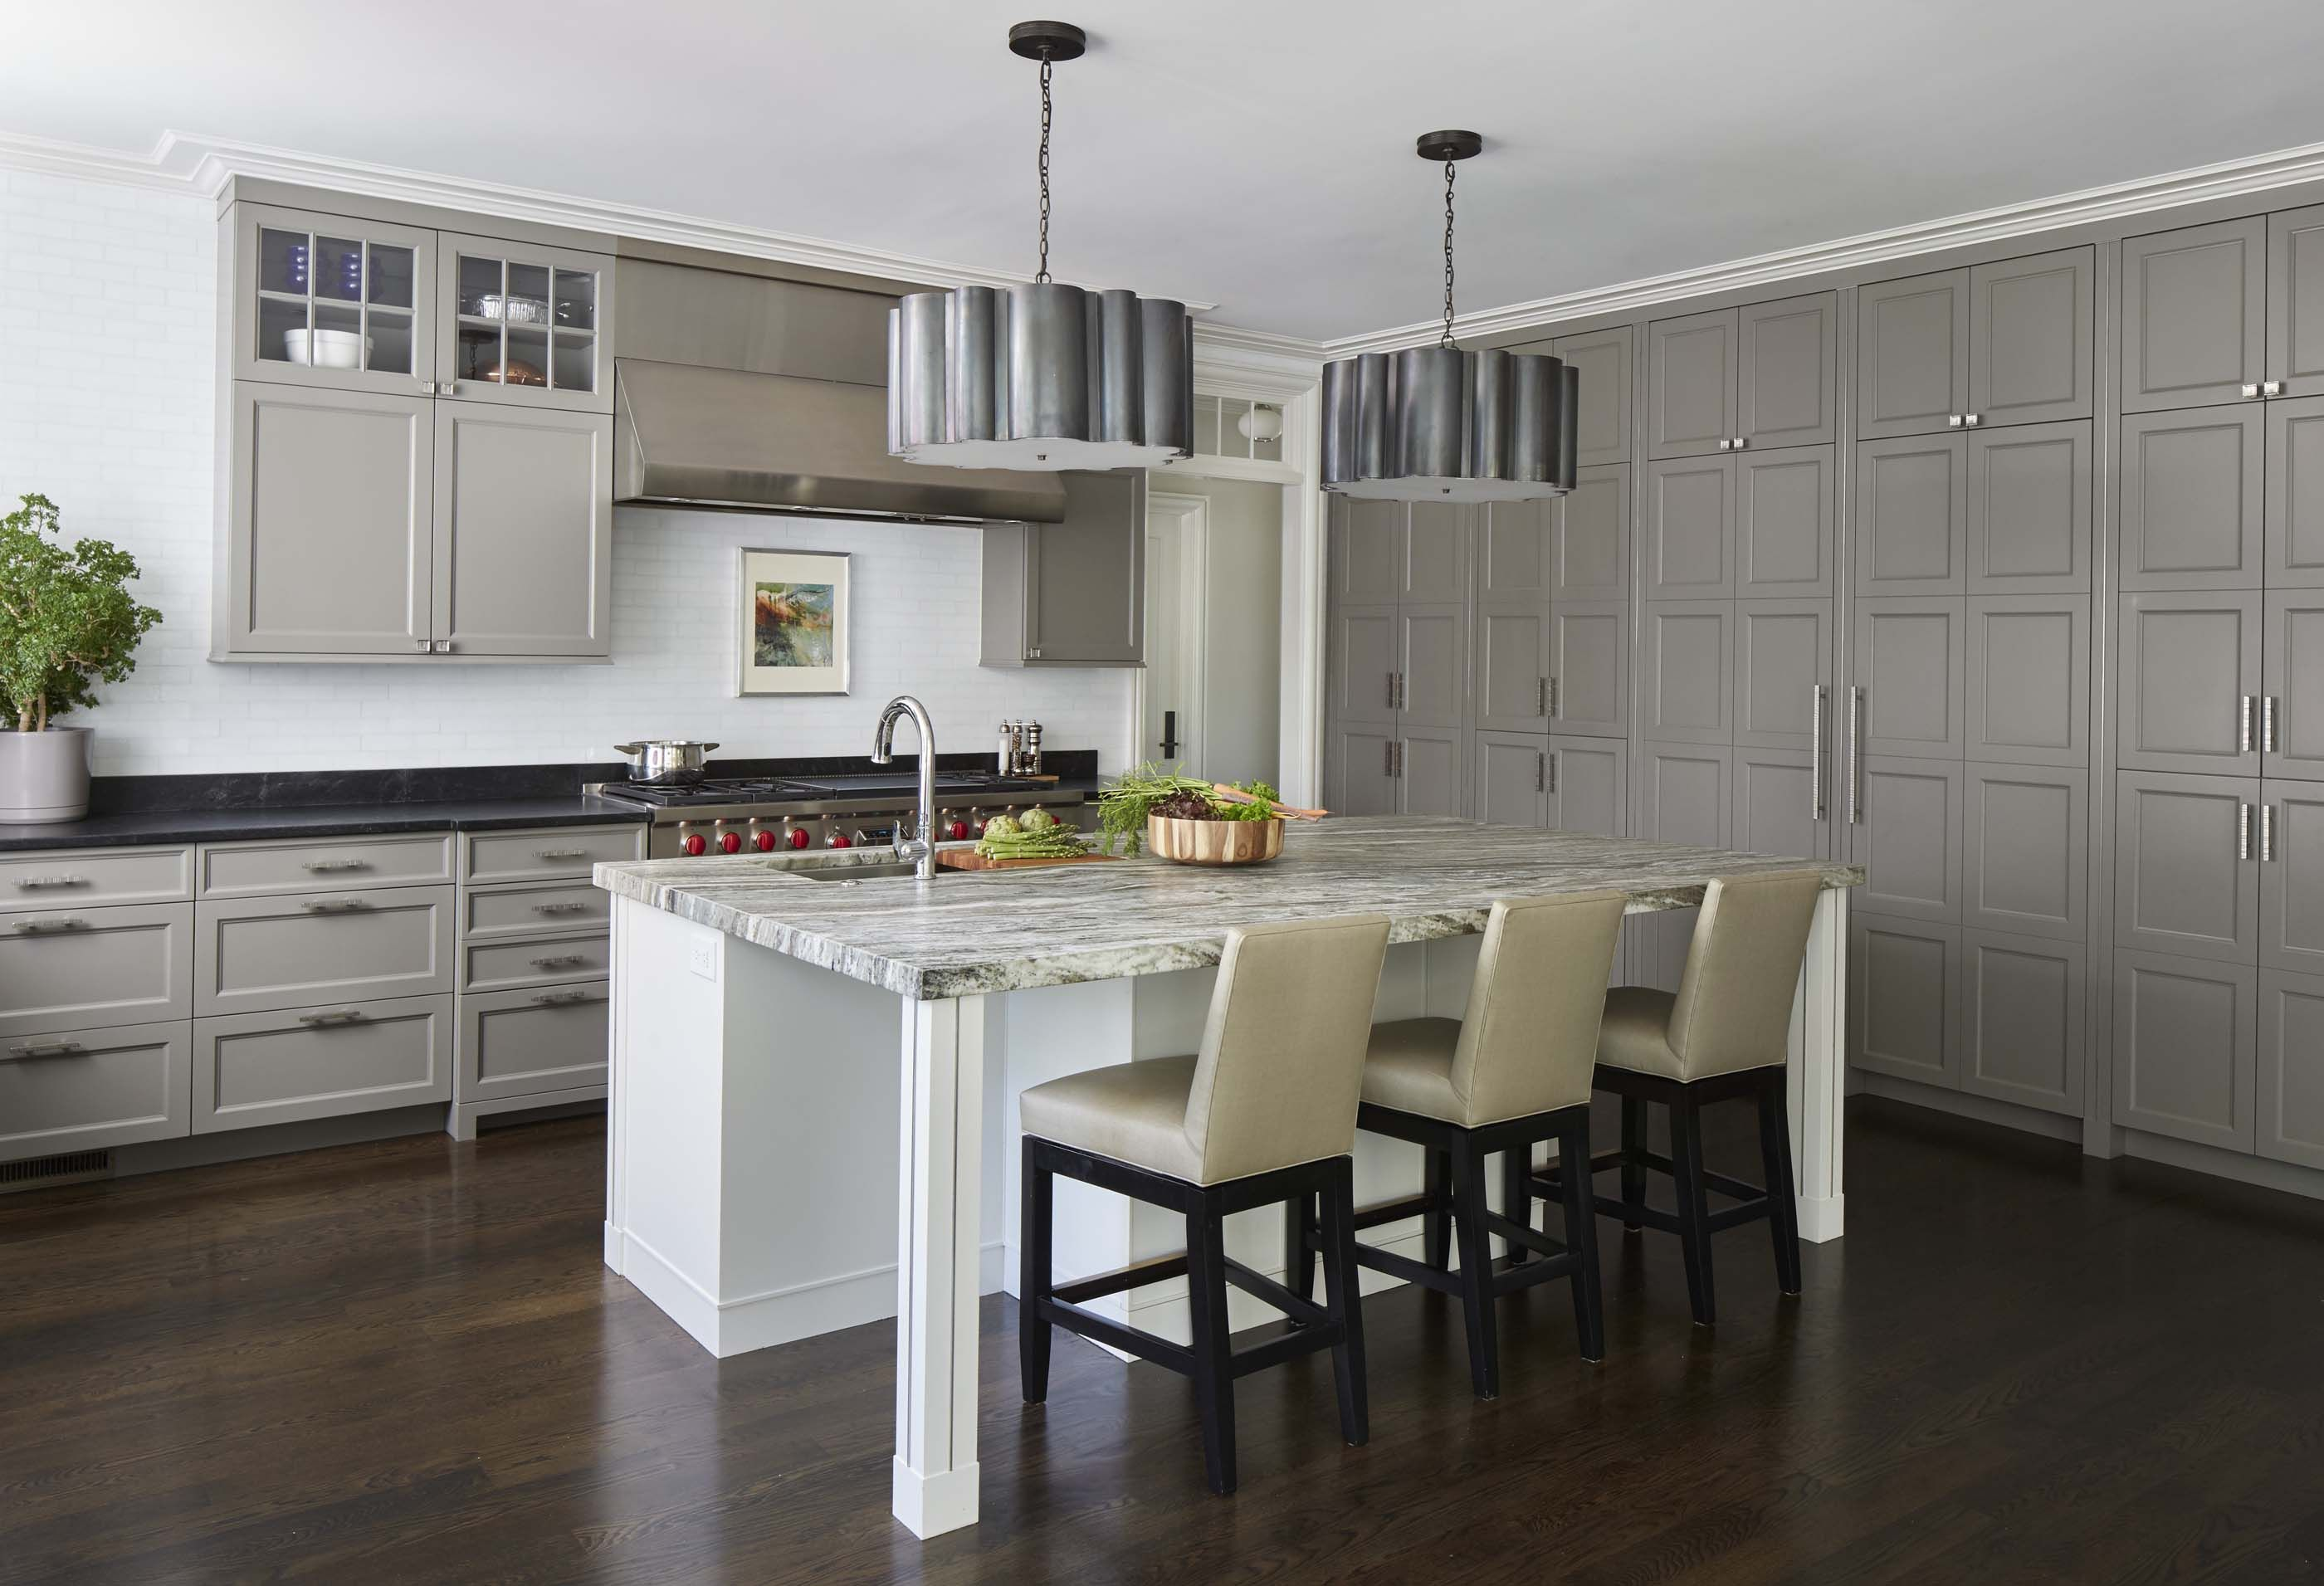 Kitchen cabinet against window  morgante wilson designed cabinets to create a symmetrical gridlike